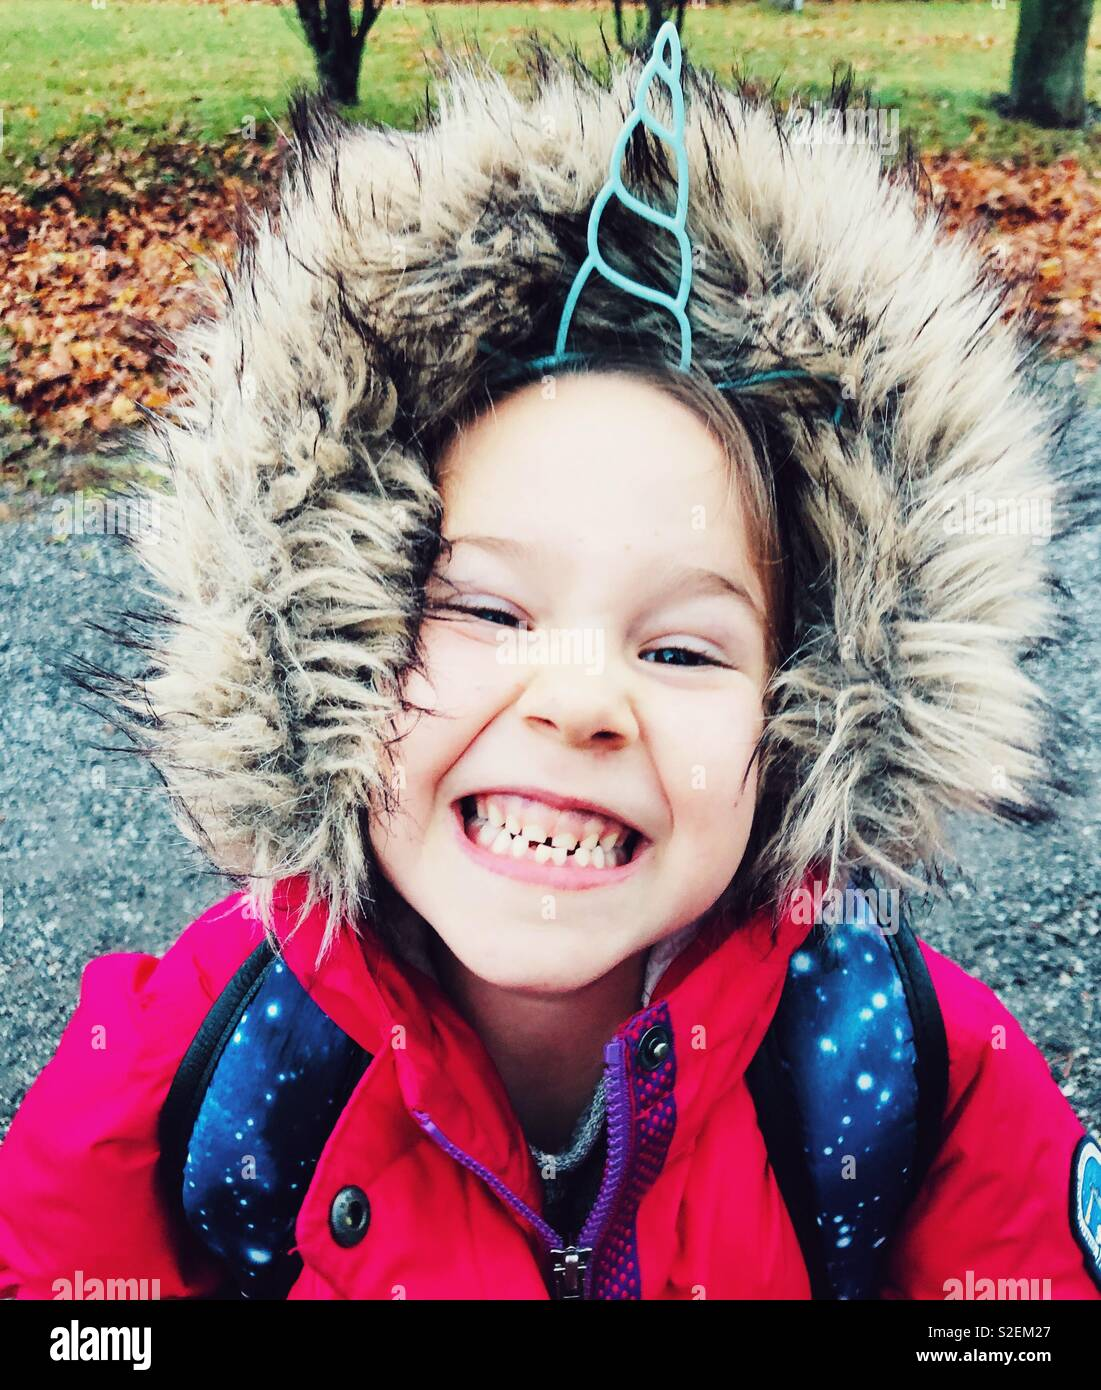 Portrait of a smiling 6 year old girl wearing unicorn horn headband and pink winter coat with furry hood - Stock Image